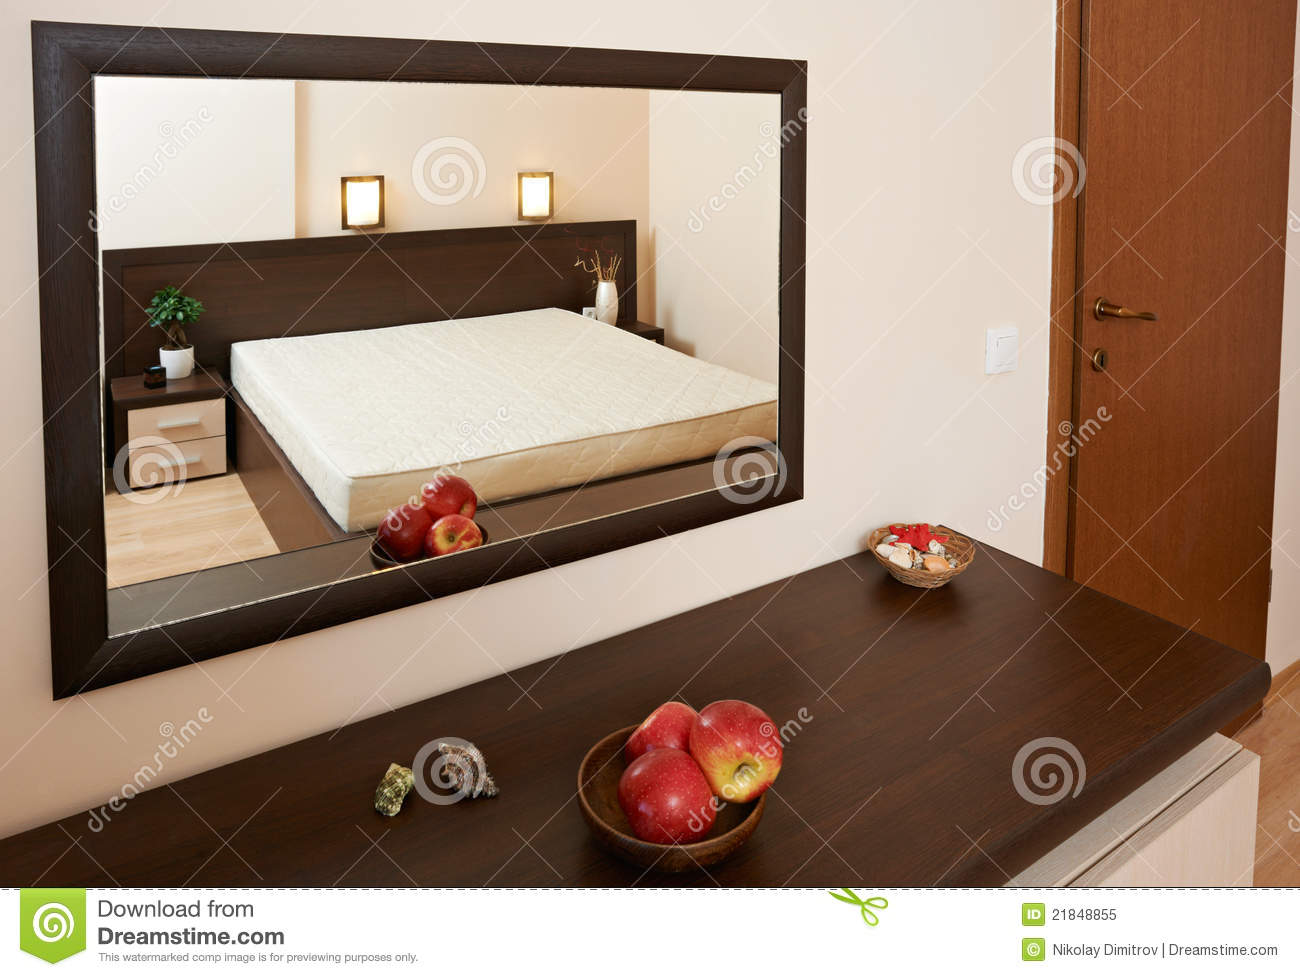 Best accessori per camera da letto pictures house design for Accessori per camera da letto